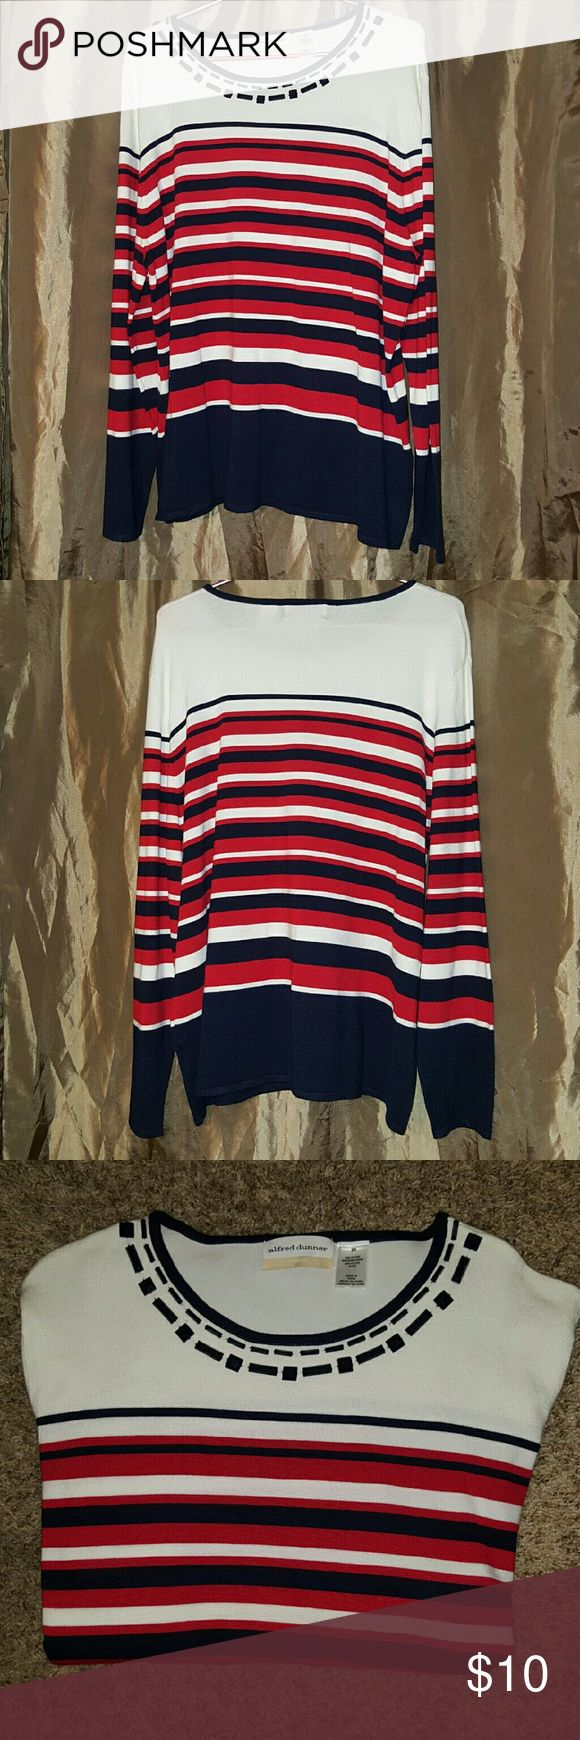 Alfred Dunner striped top Alfred Dunner striped long sleeve top with navy stripes. Plus size 2x.   Pretty rectangle and square beads along the neckline, which gives the shirt an extra pop.   Item is in excellent used good condition. I inspect all my items for stains, rips and holes before listing.   *All my items are from a clean, pet and smoke free home*   Please look through all the pictures before purchasing.   Thank you for looking! Alfred Dunner Tops Tees - Long Sleeve